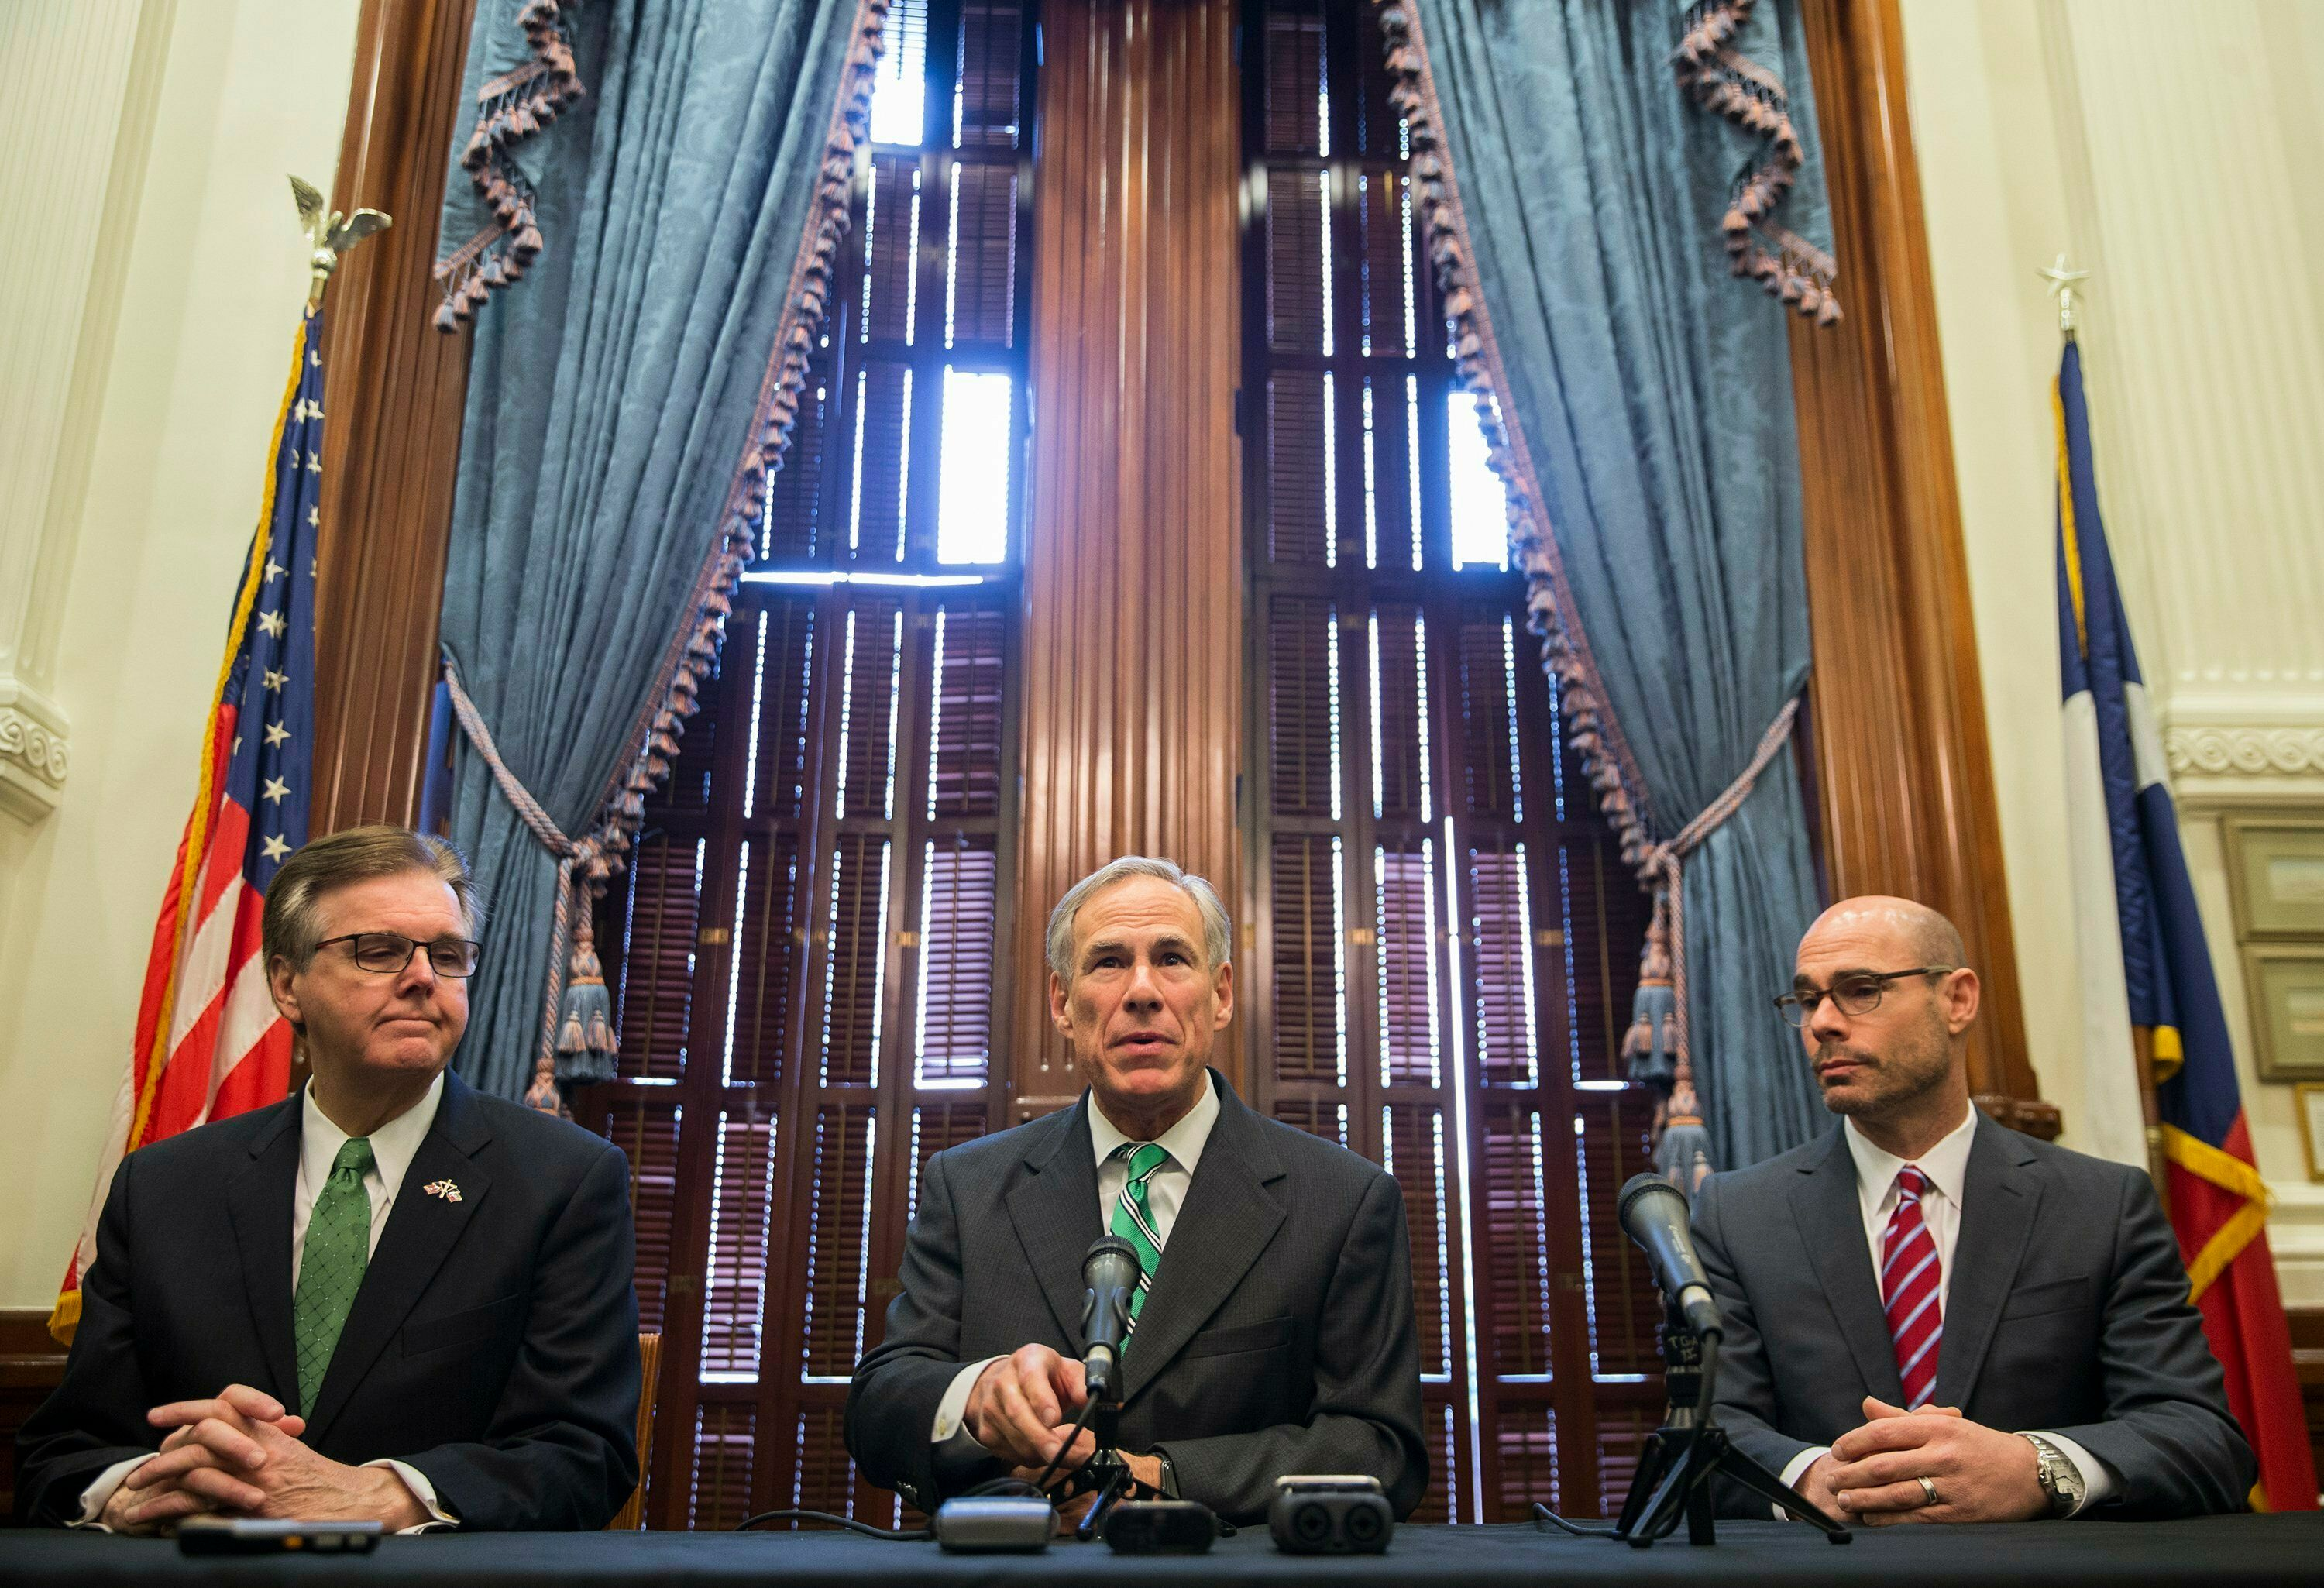 Gov. Greg Abbott, Lt. Gov. Dan Patrick and Speaker Dennis Bonnen as well as chairmen for committees charged with studying property tax reforms spoke to the local news media during a press conference Thursday, Jan. 31, 2019, about tax reform in Texas. (Ricardo B. Brazziell/Austin American-Statesman via AP)